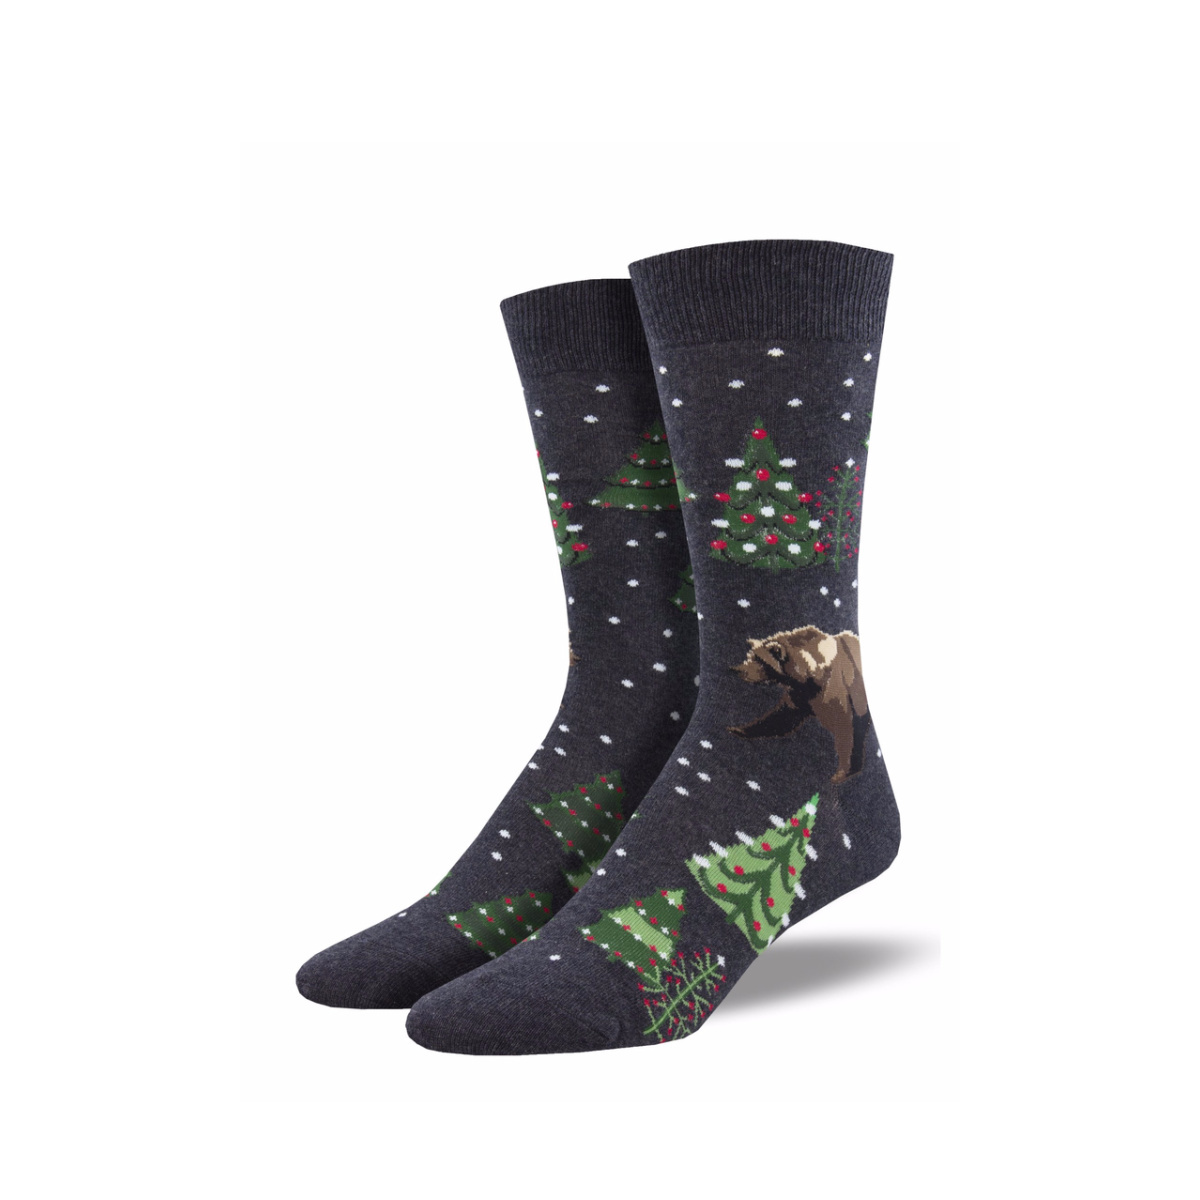 Socksmith Socksmith Men's Cotton Beary Christmas